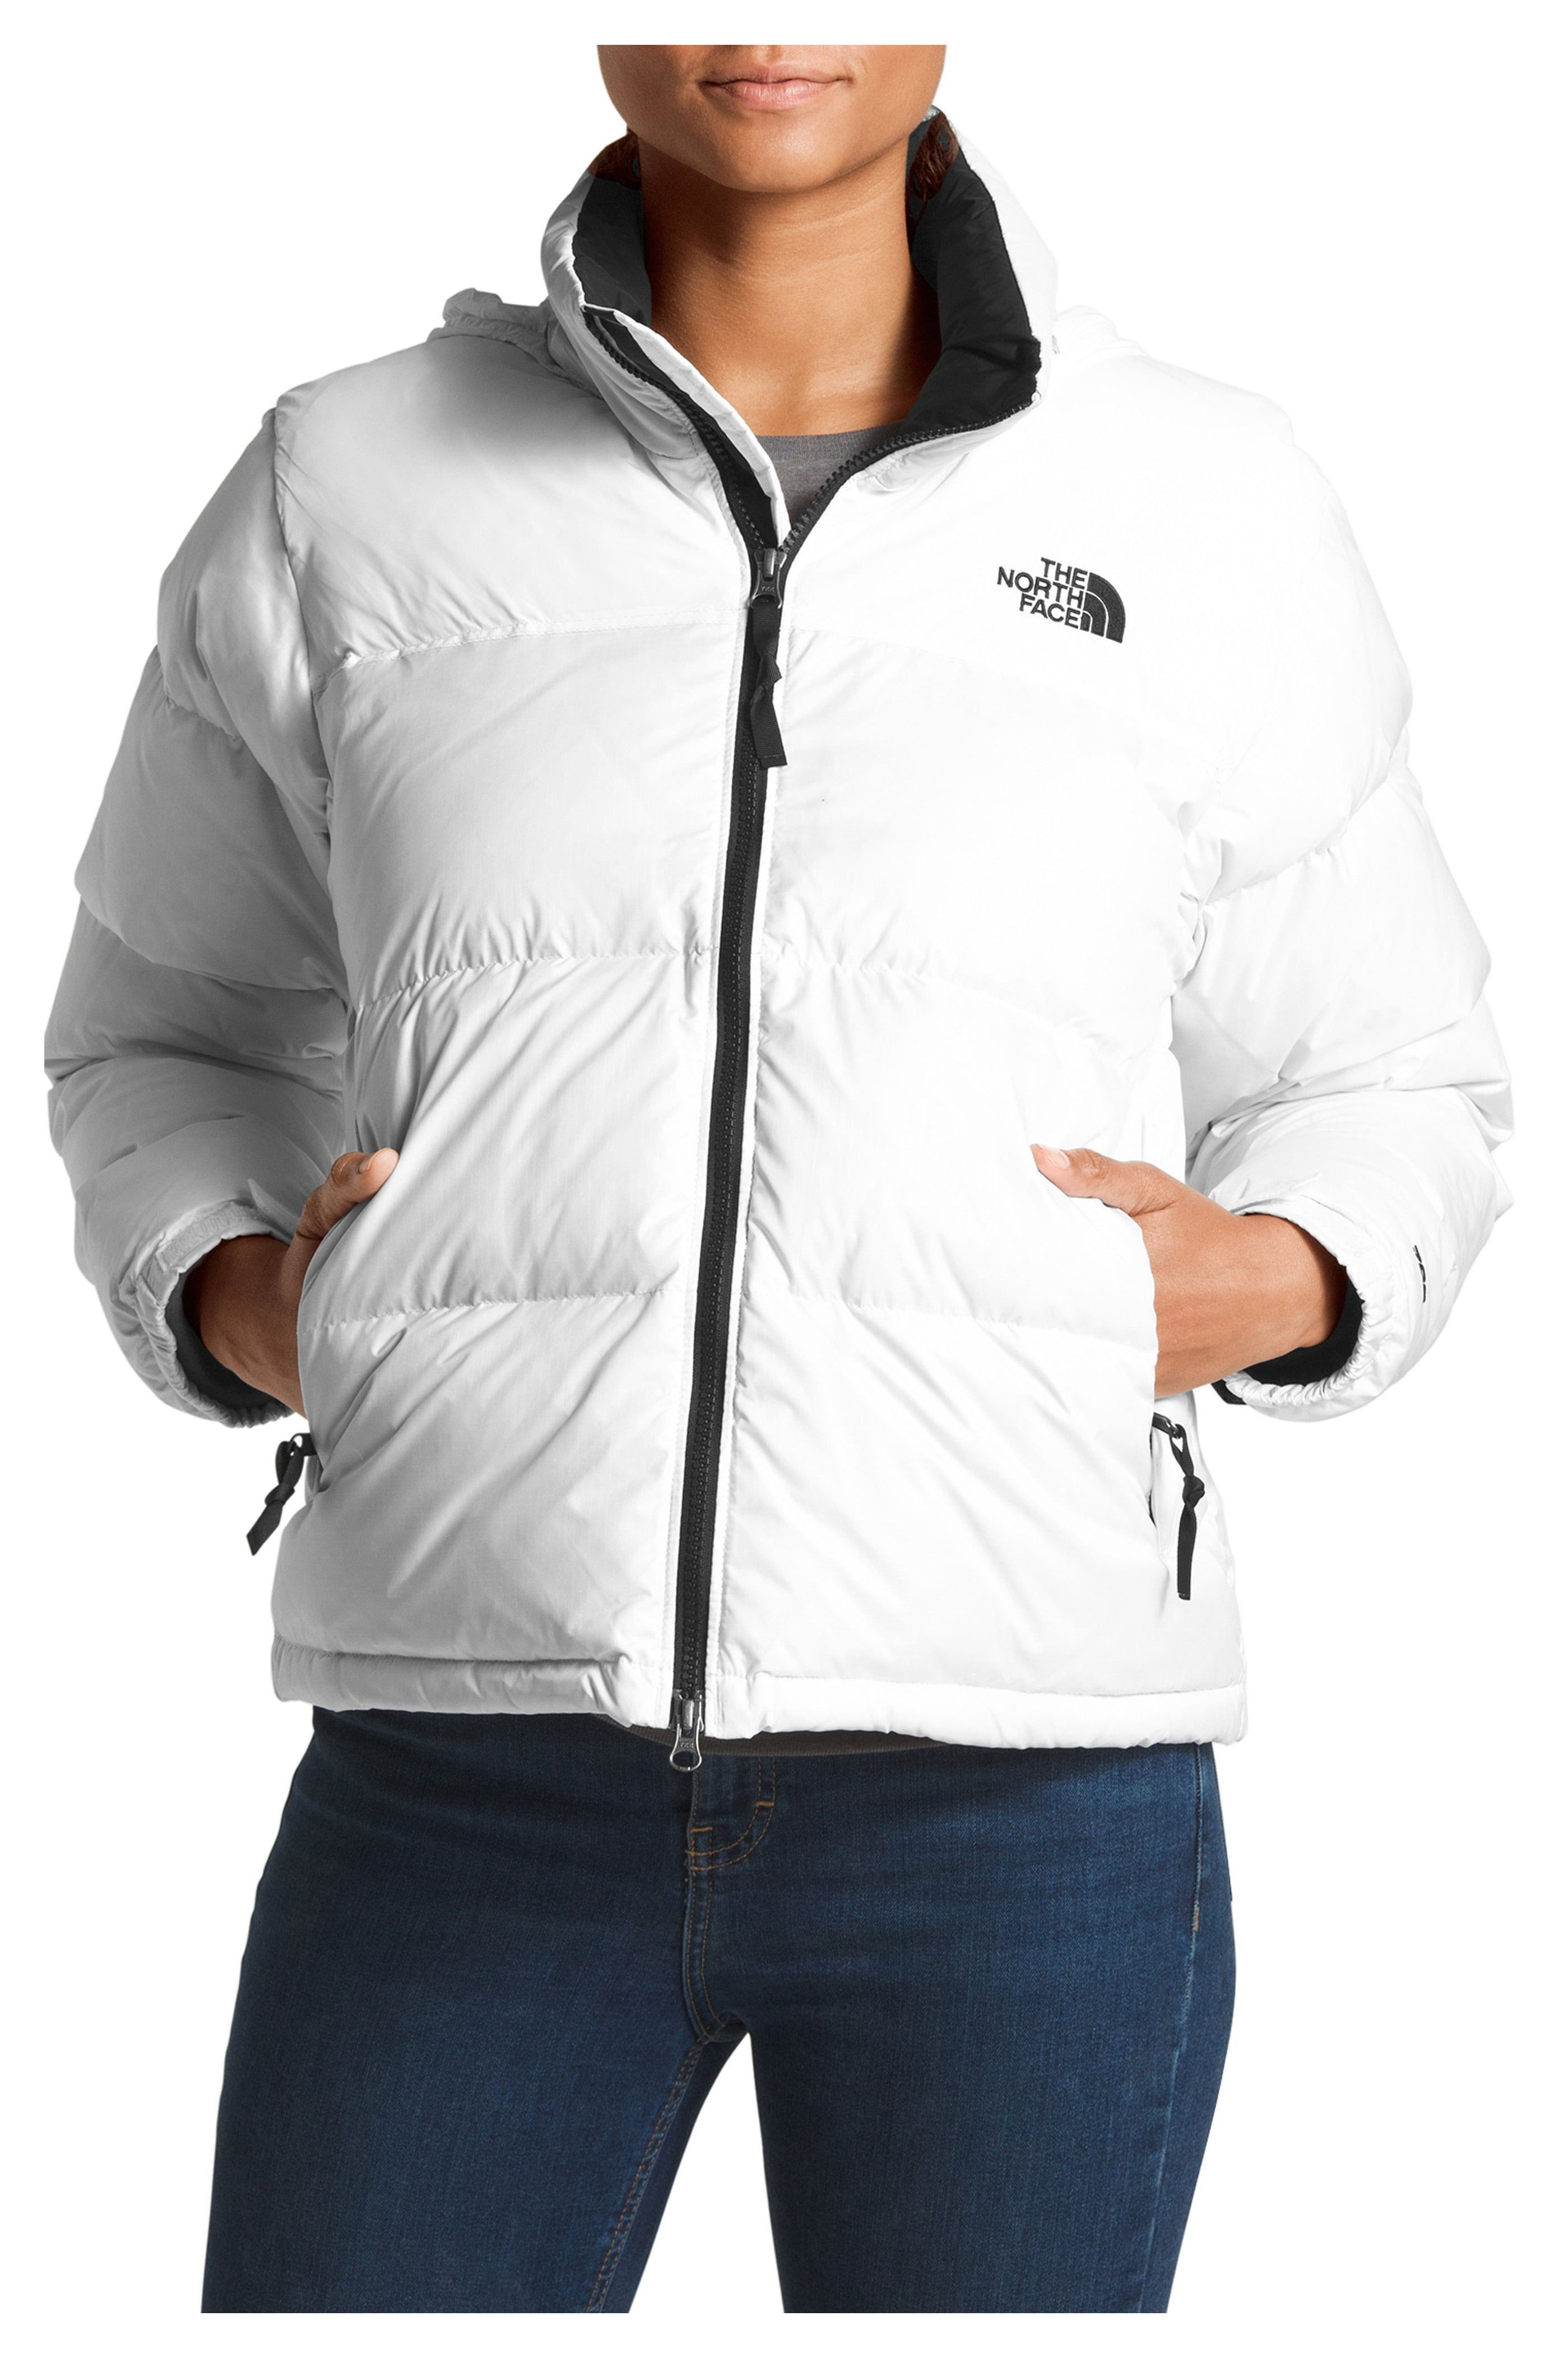 Pin By Raven Moore On Clothes In 2021 White North Face Jacket North Face Nuptse North Face Puffer Jacket [ 4208 x 2798 Pixel ]